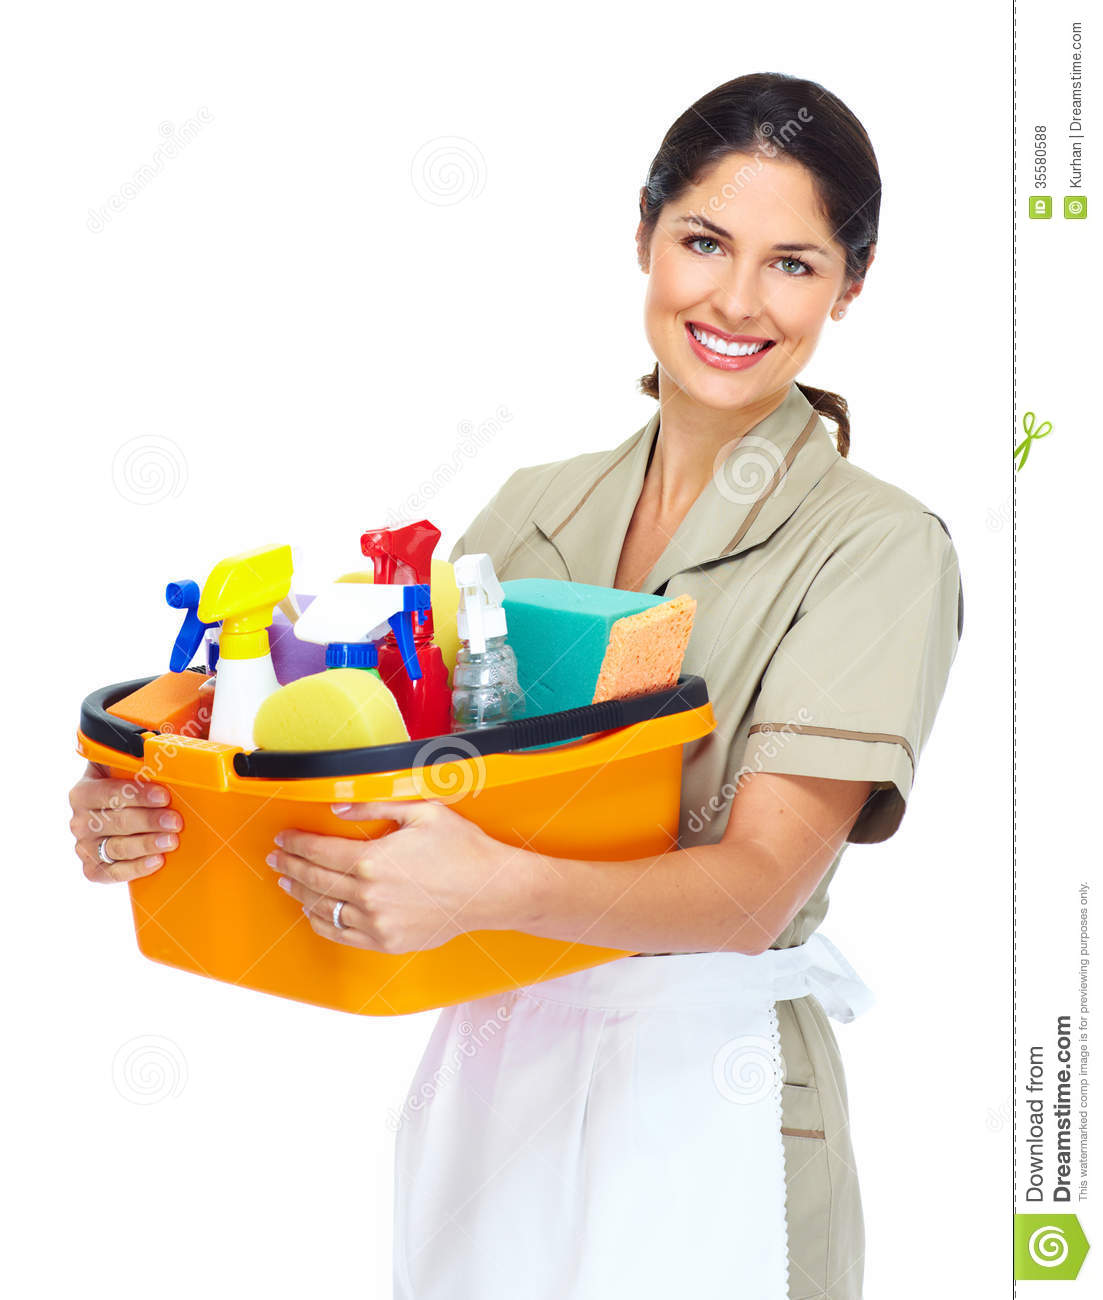 boat kitchen design with Royalty Free Stock Photos Young Smiling Cleaner Woman Smiyoung Isolated Over White Background Ling Isolated Over White Background Image35580588 on 3 uses grater as well Victorian Townhouse In London Will Get A Classy Modern Extension moreover New Luxury Marina Ayia Napa in addition Top Most Beautiful Gardens In The World 6 also Home Deck Designs.